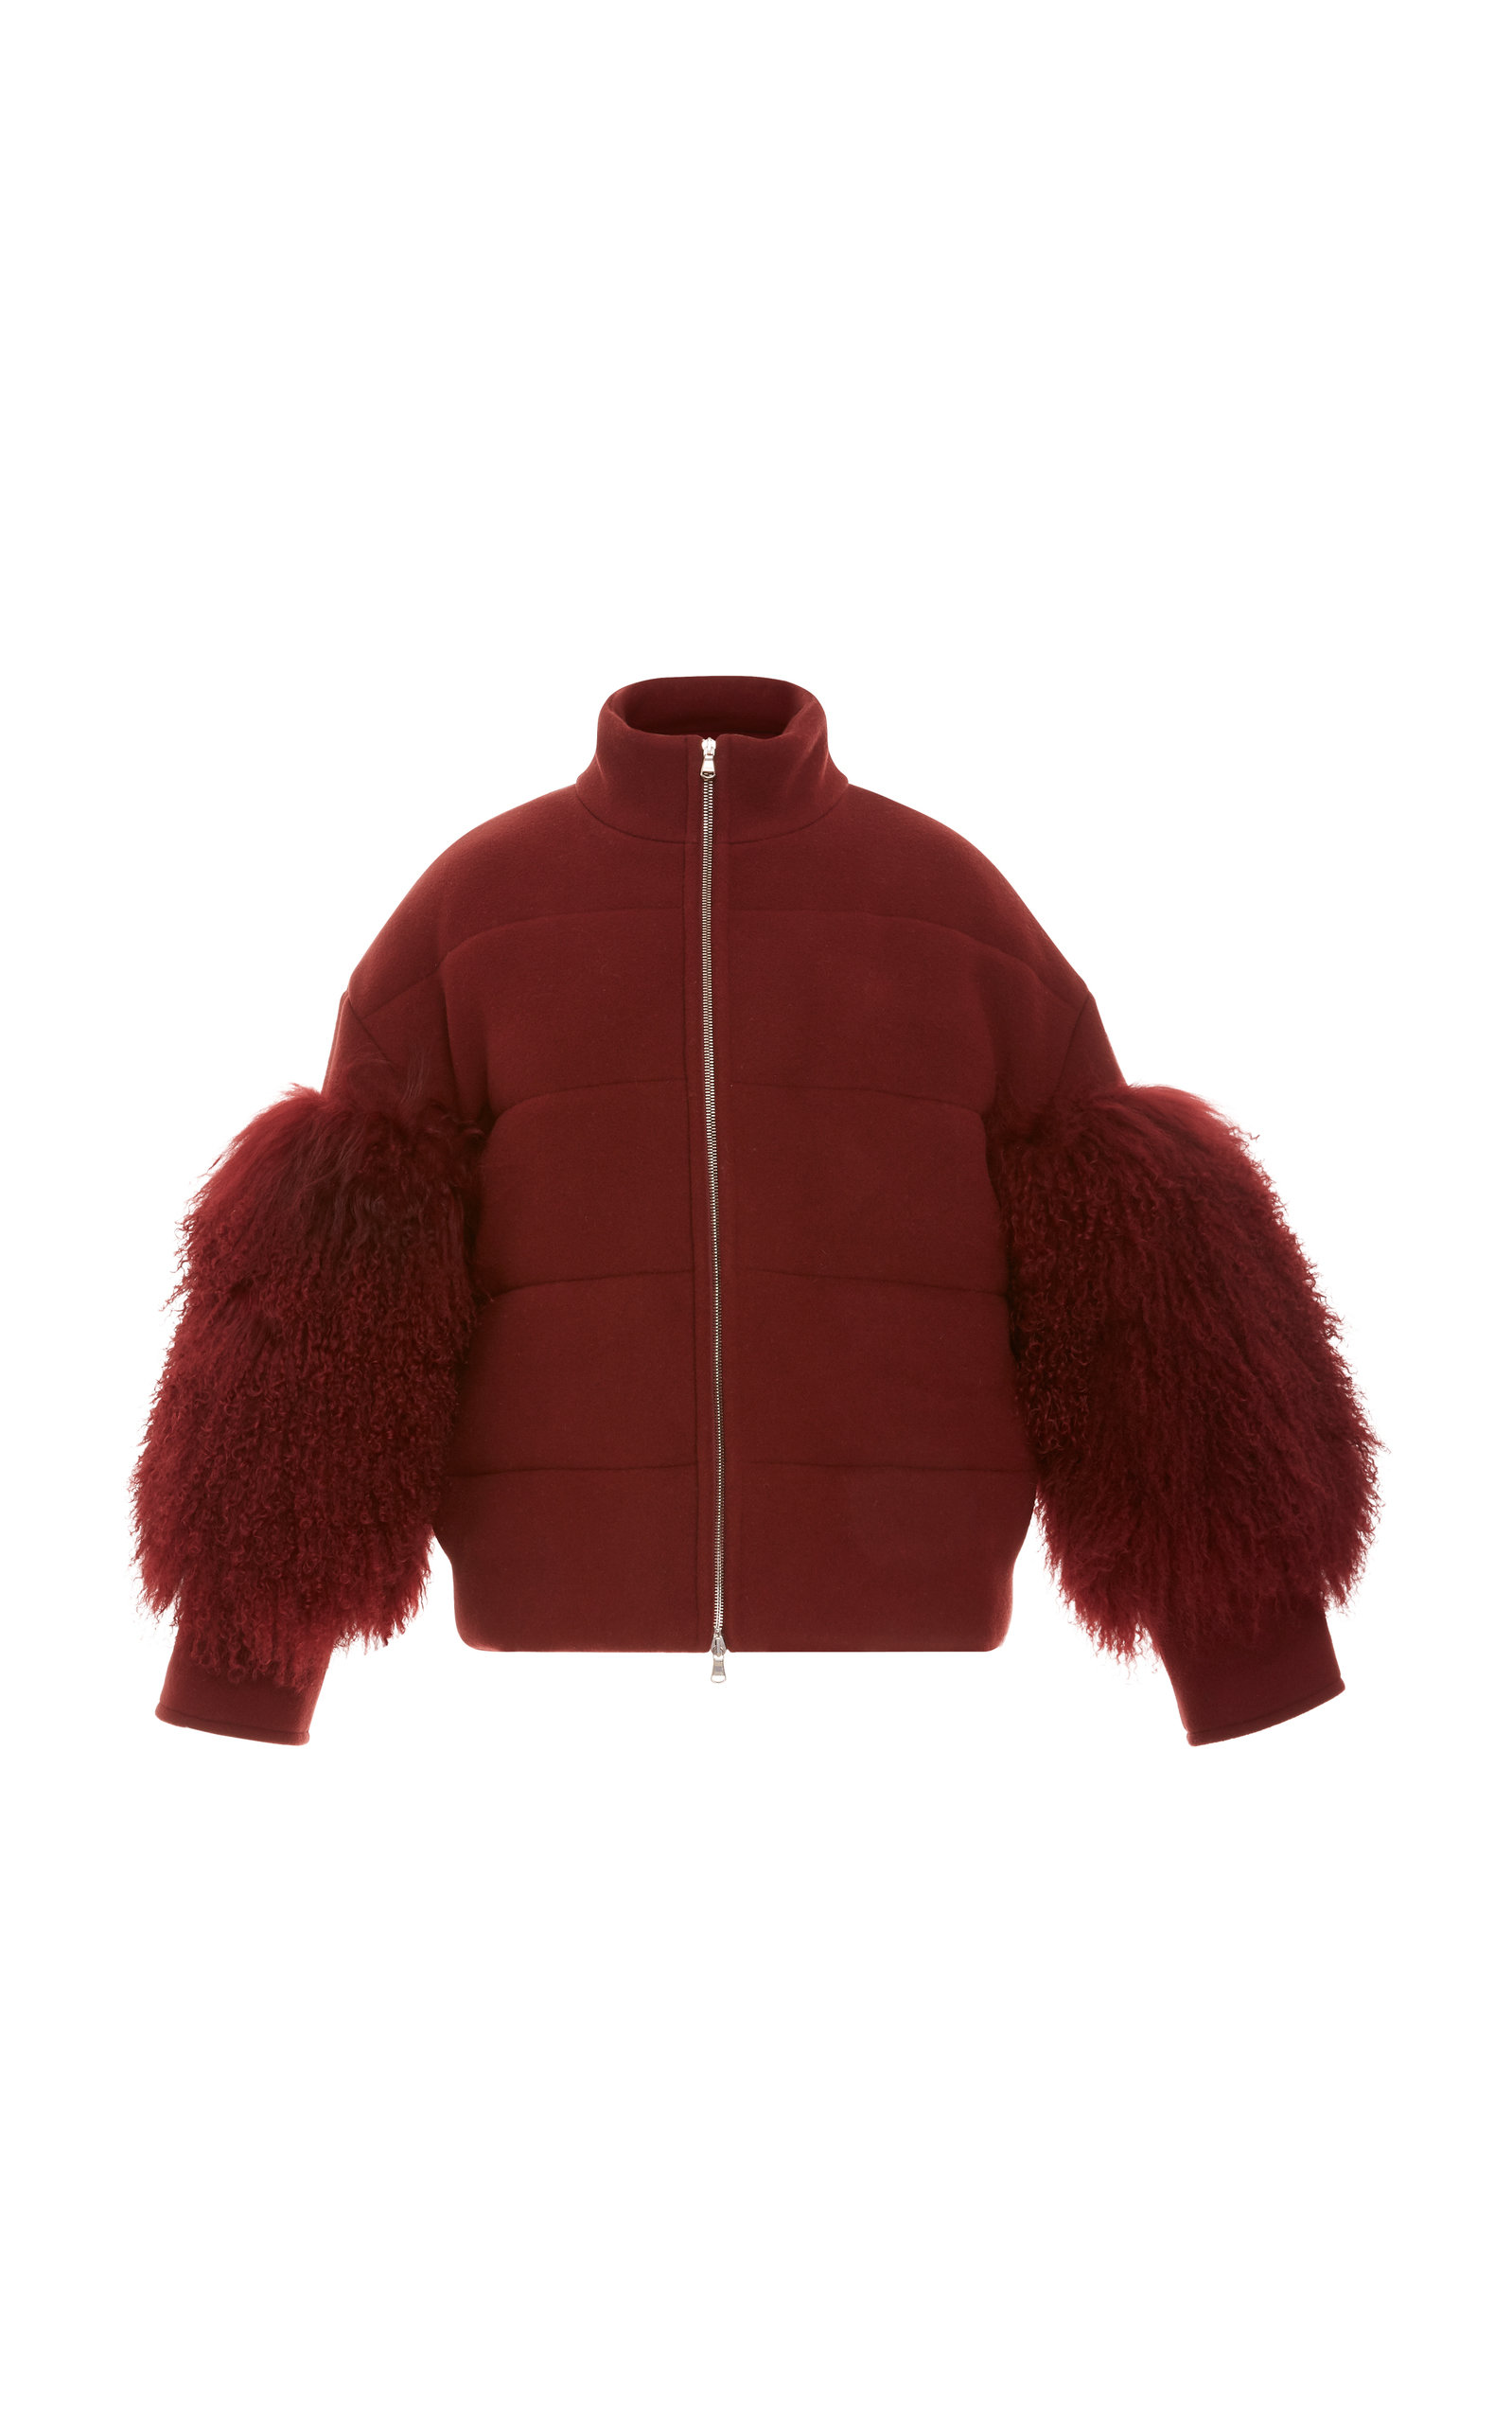 81d3bf17cd Cropped Puffer Coat With Shearling